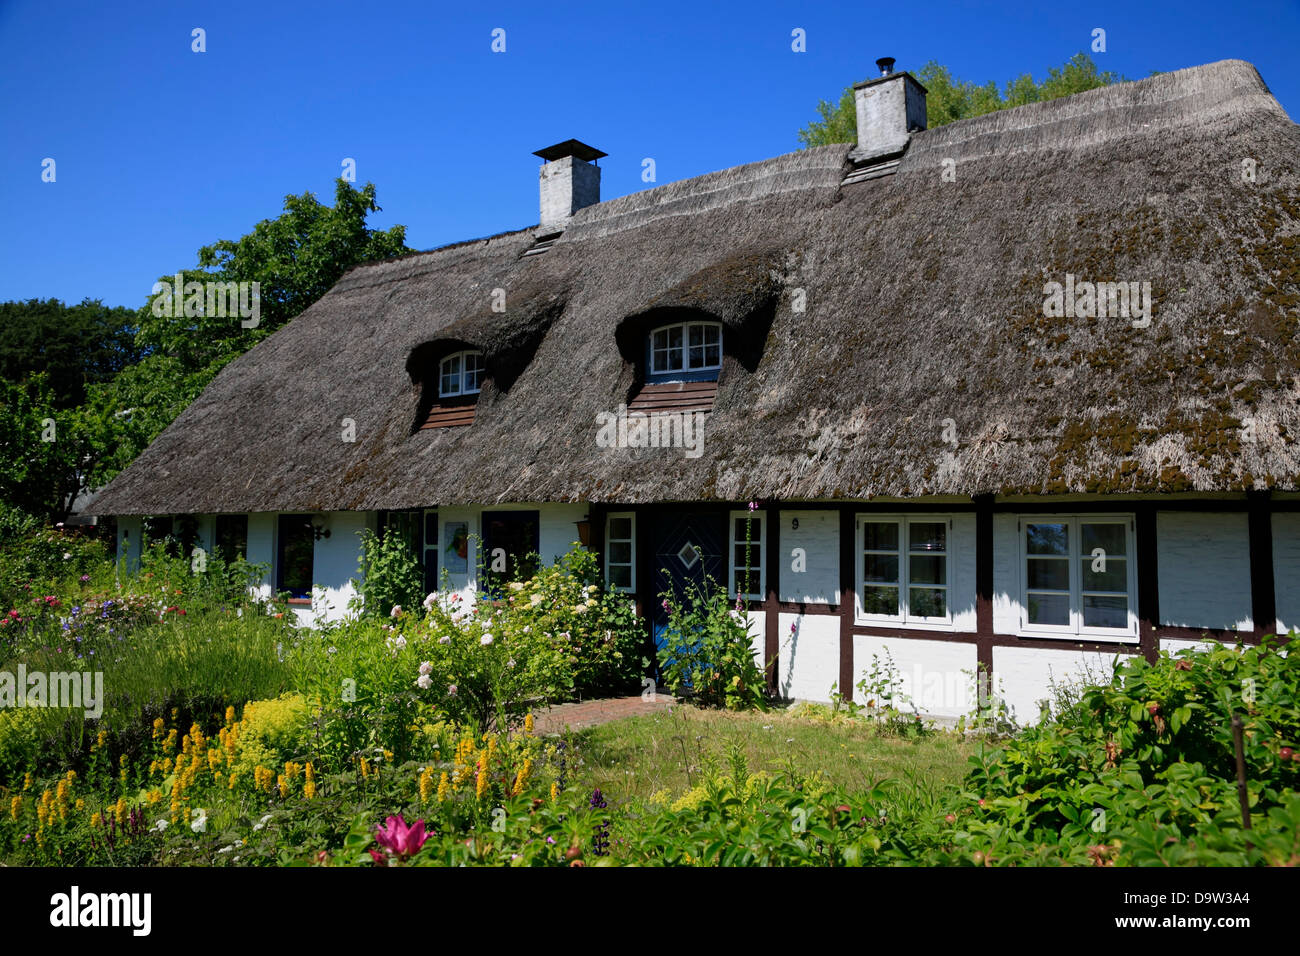 old thatched house in strande kiel bay schleswig holstein germany stock photo royalty free. Black Bedroom Furniture Sets. Home Design Ideas